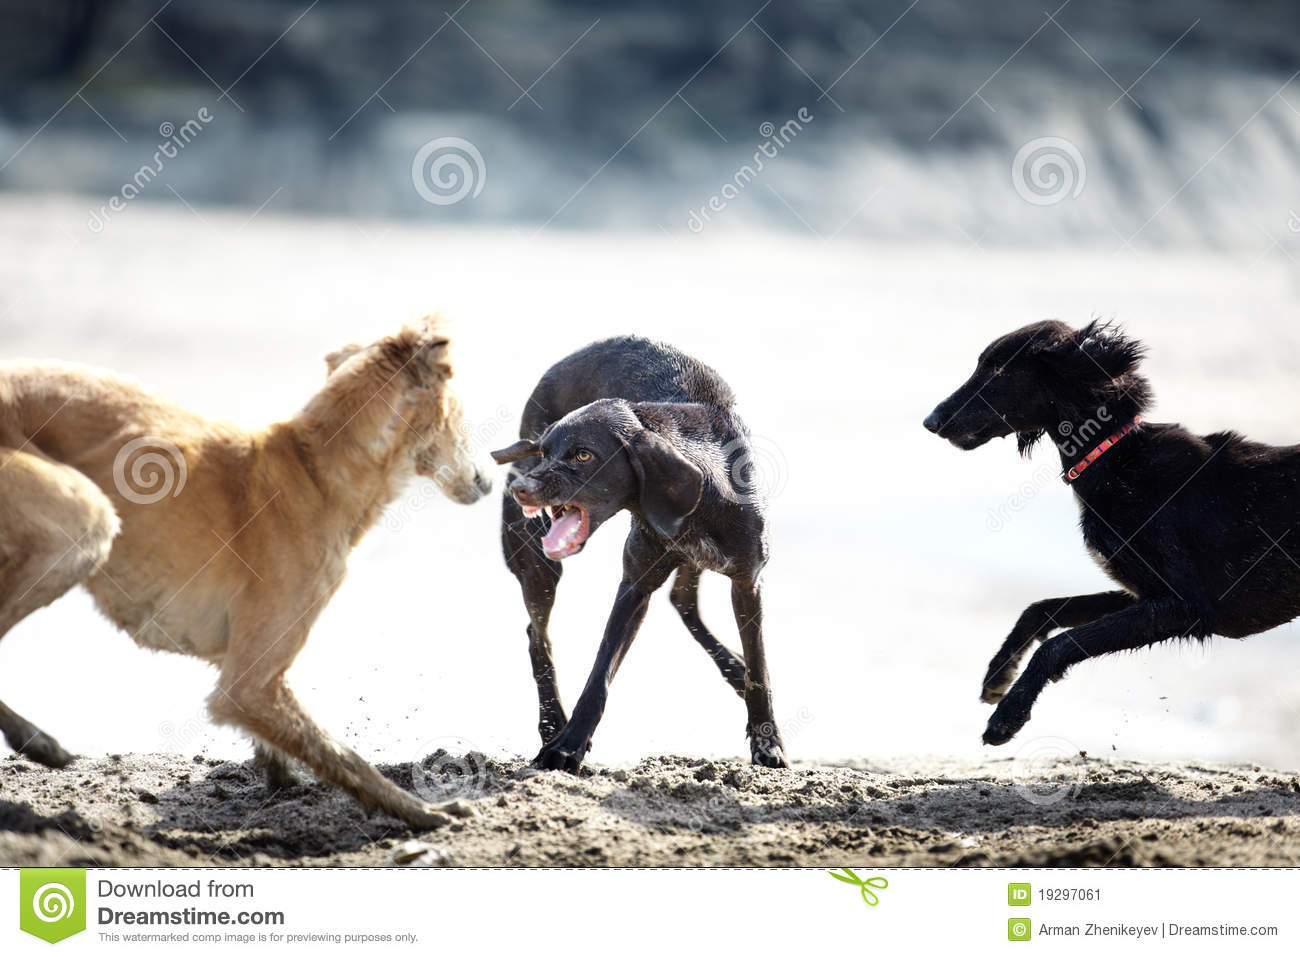 Dog Fighting Videos Free Download